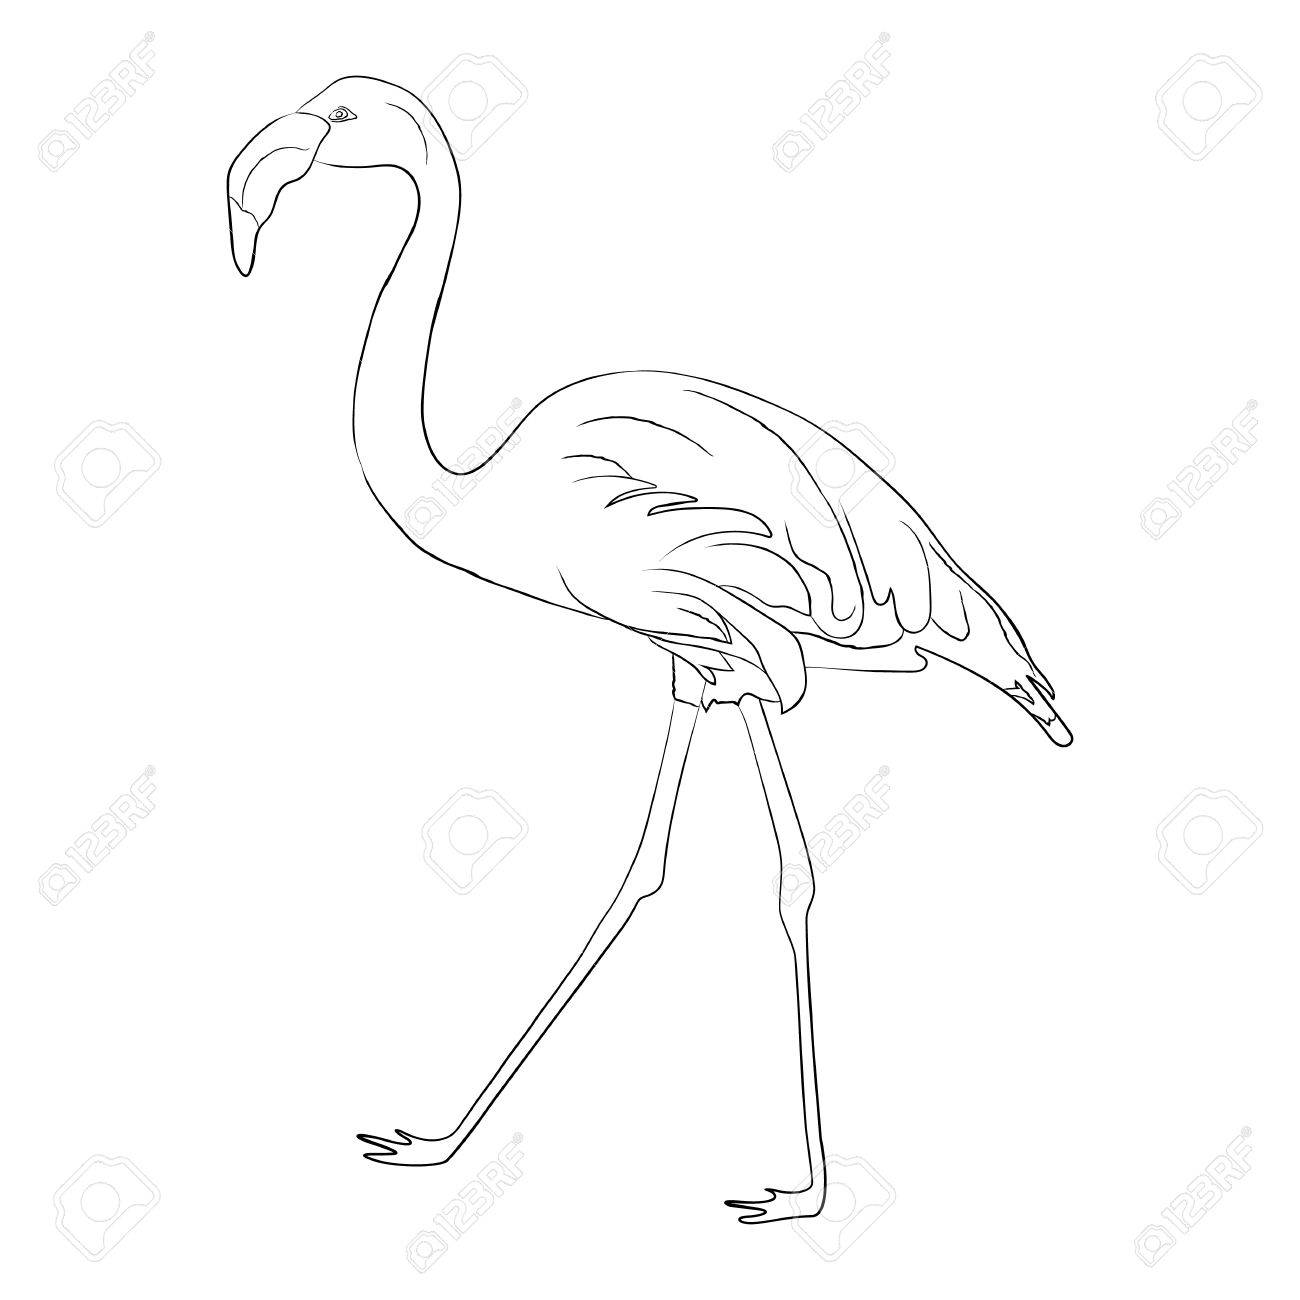 Hand Drawn Flamingo Black Outline Sketch Exotic Bird Stock Photo